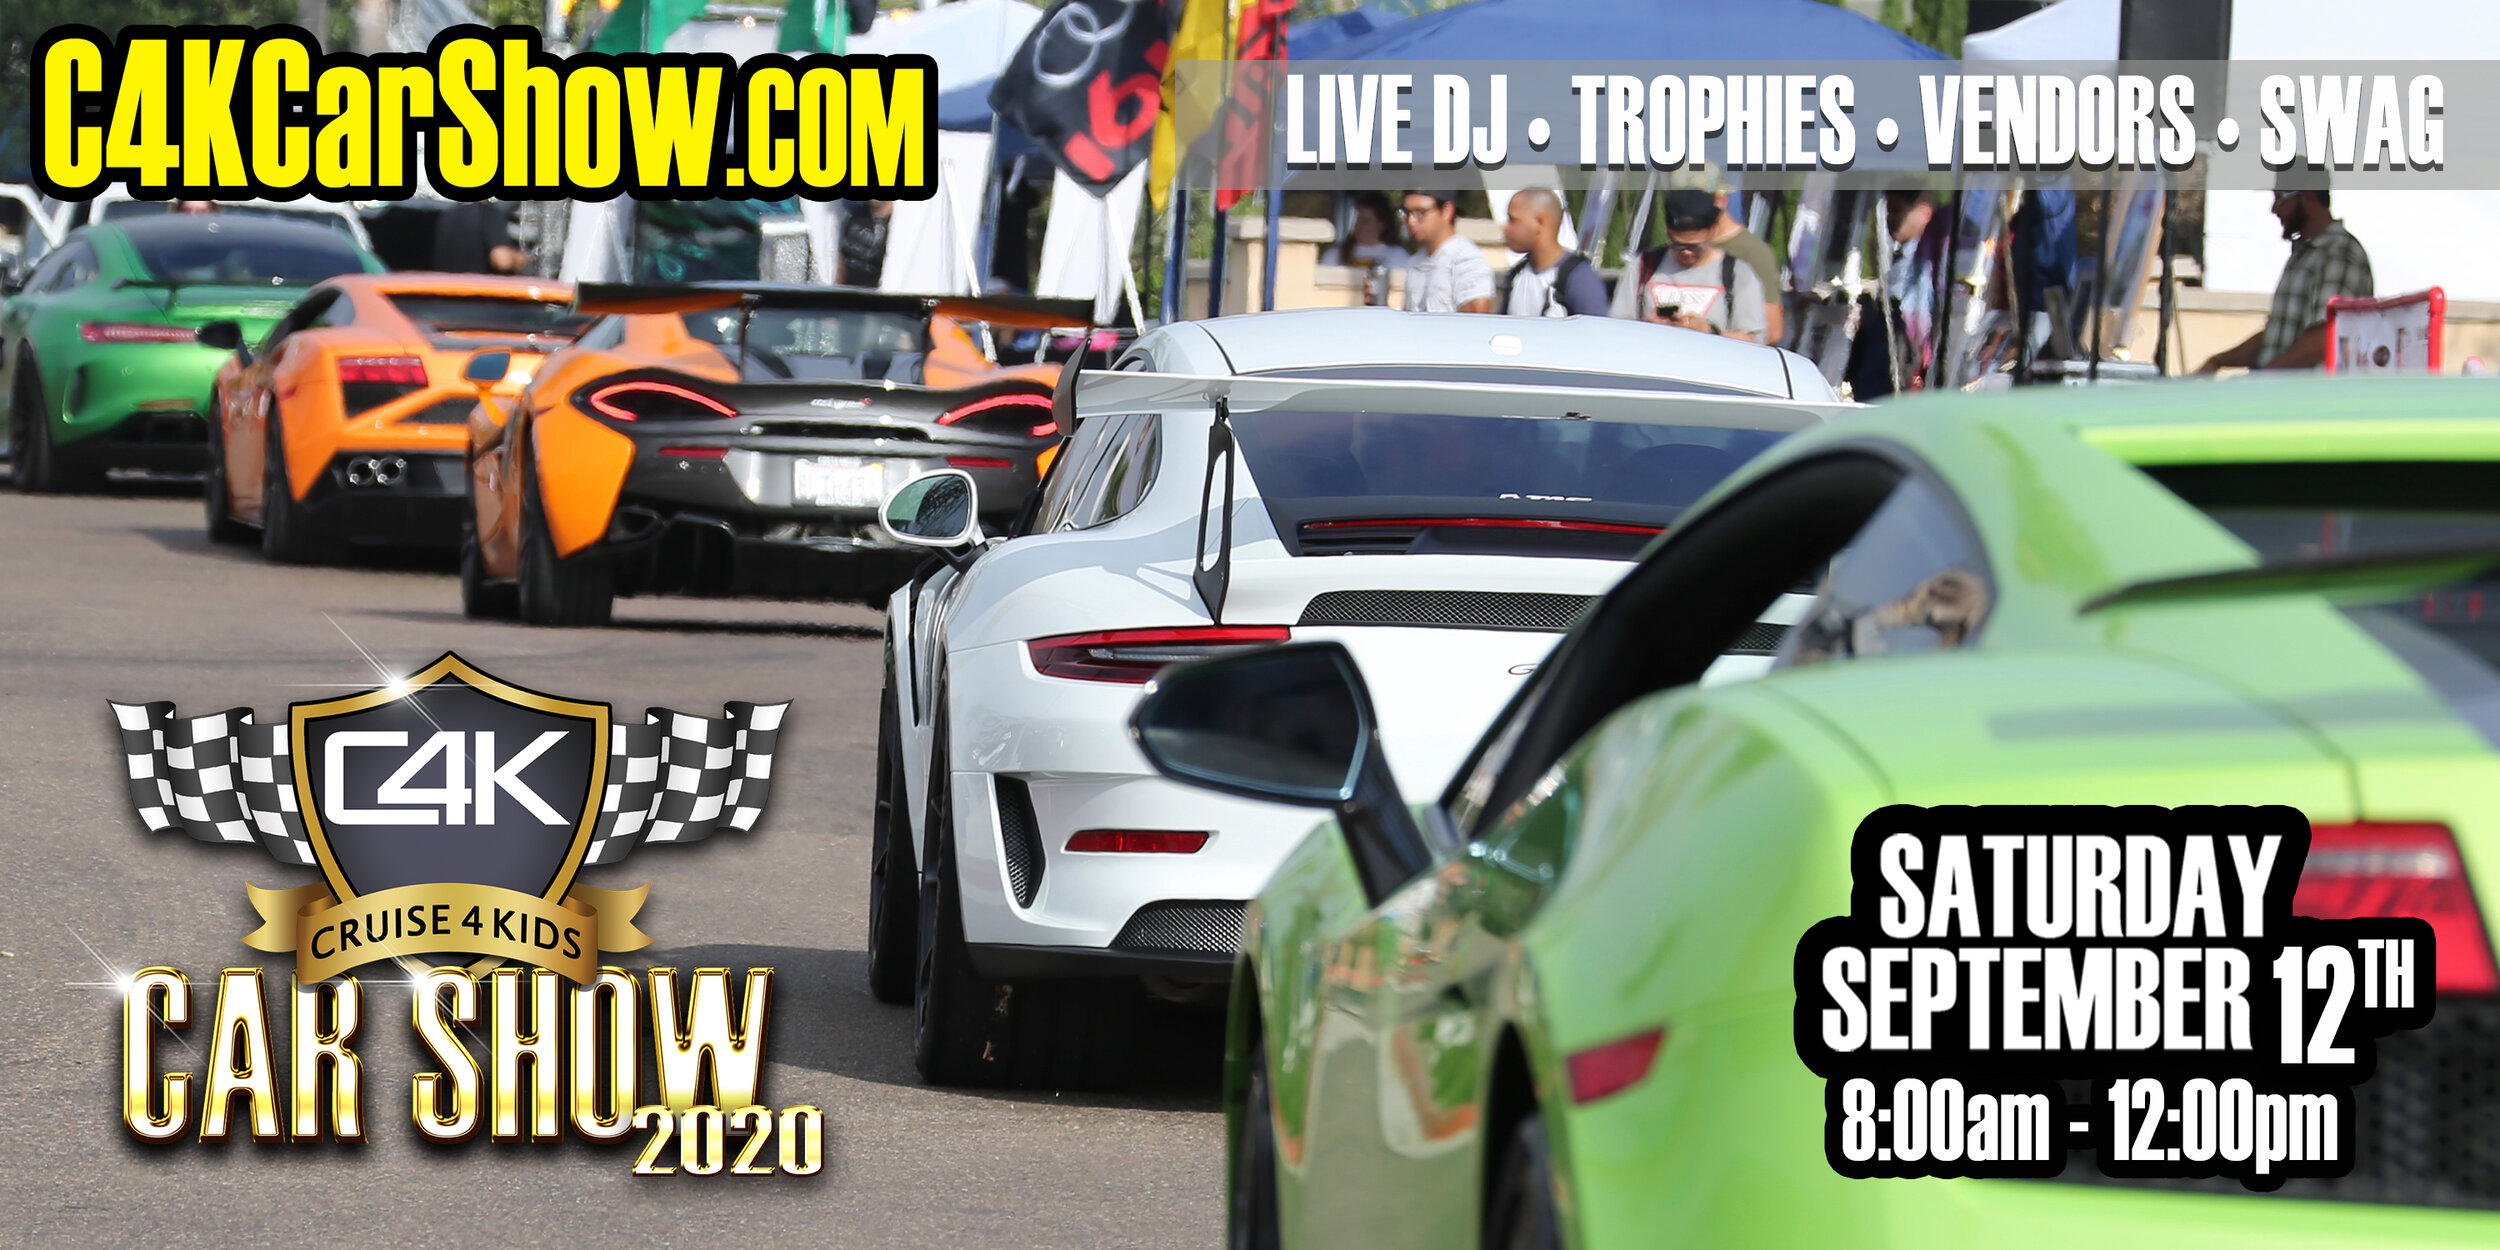 C4K Car Show 2020 Banner Website.jpg